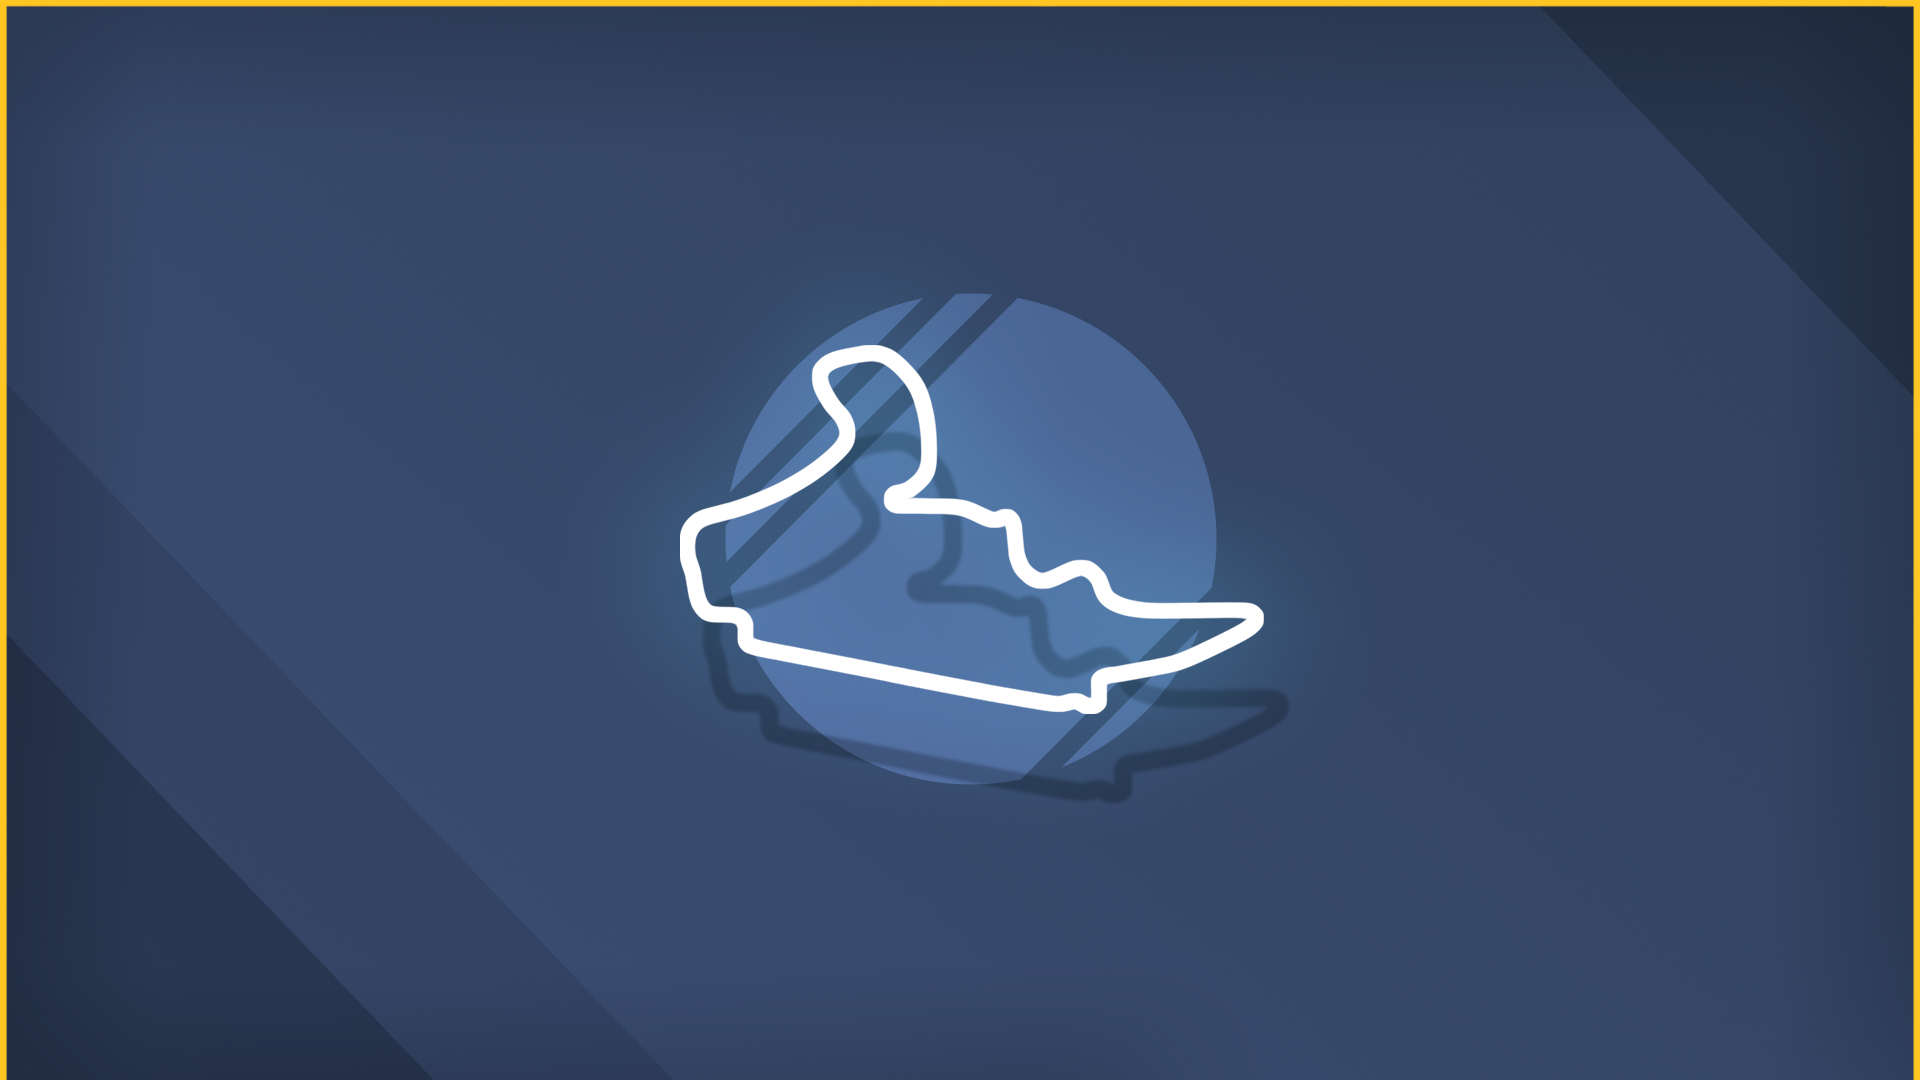 Icon for Champ of Hungary Speedway